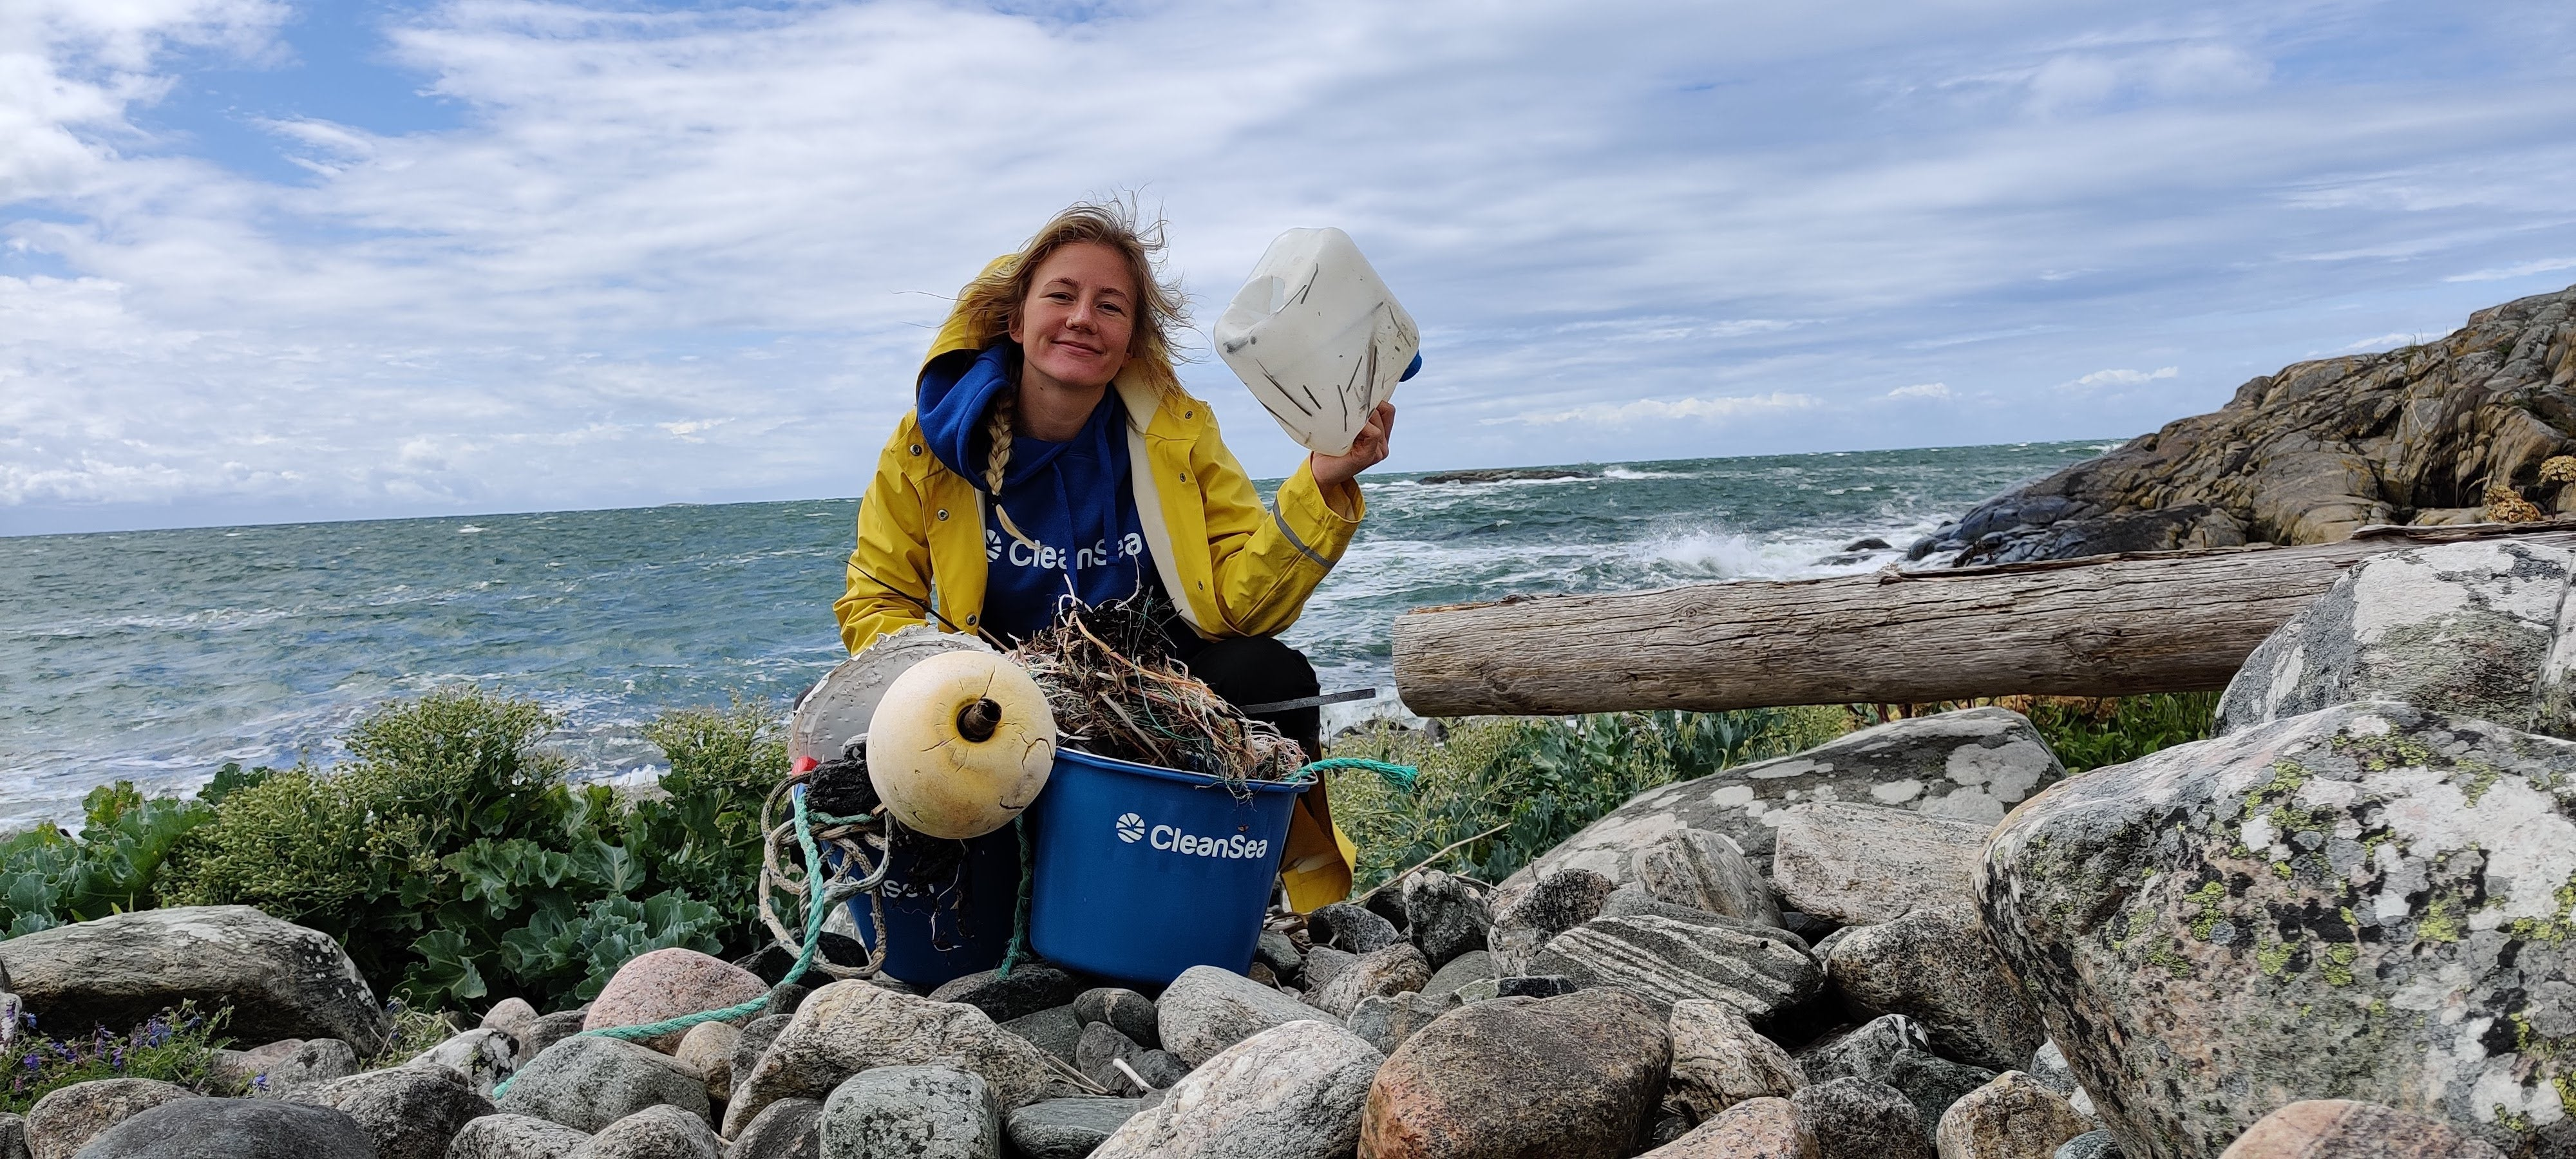 CleanSea coastal cleanups to remove ocean plastic